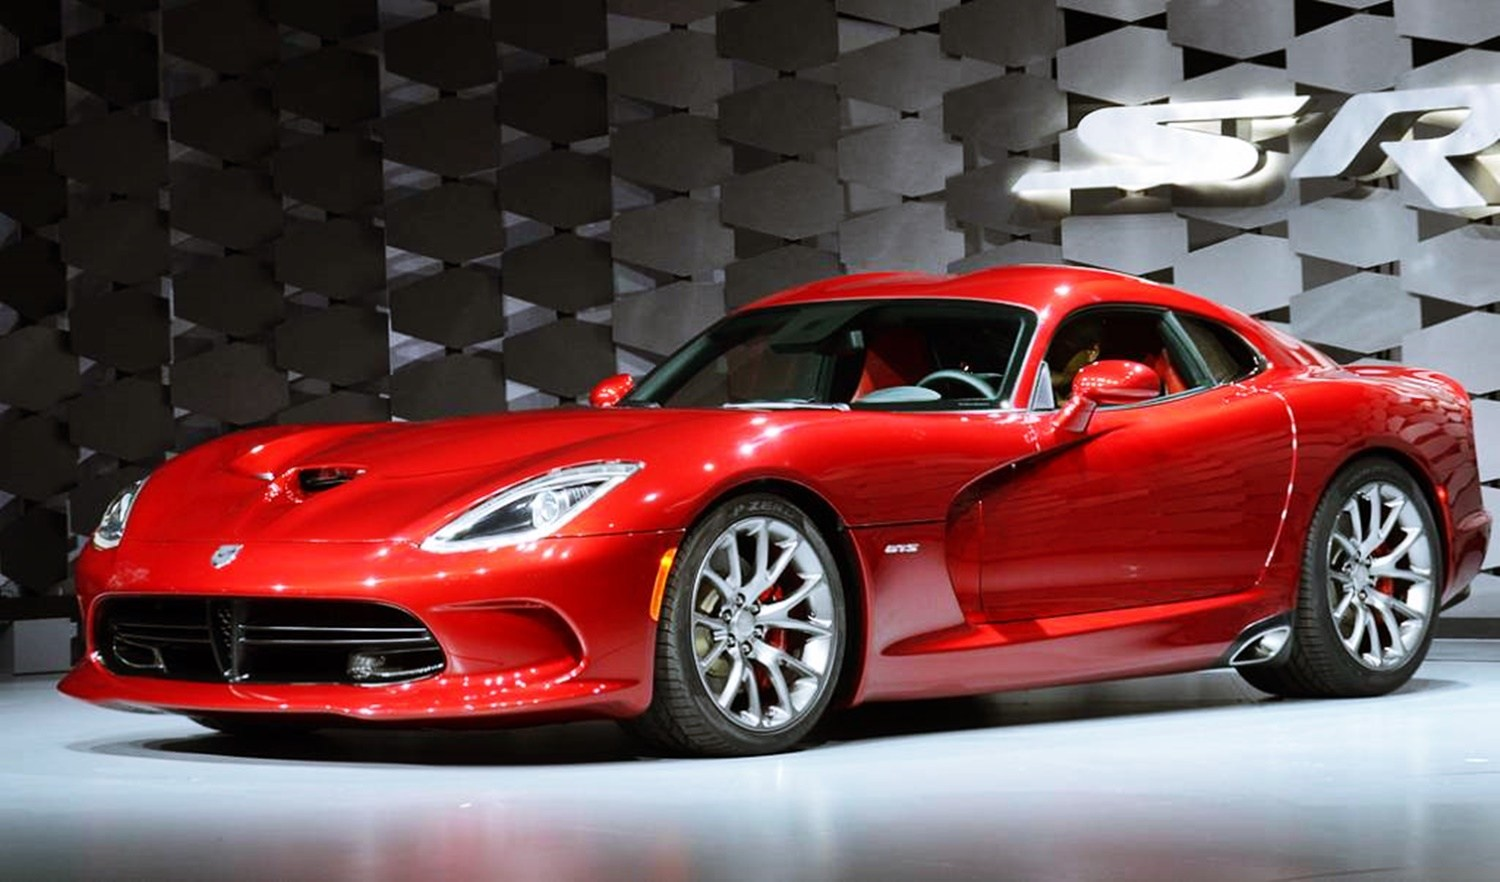 13 New Dodge Viper Concept 2020 Exterior And Interior